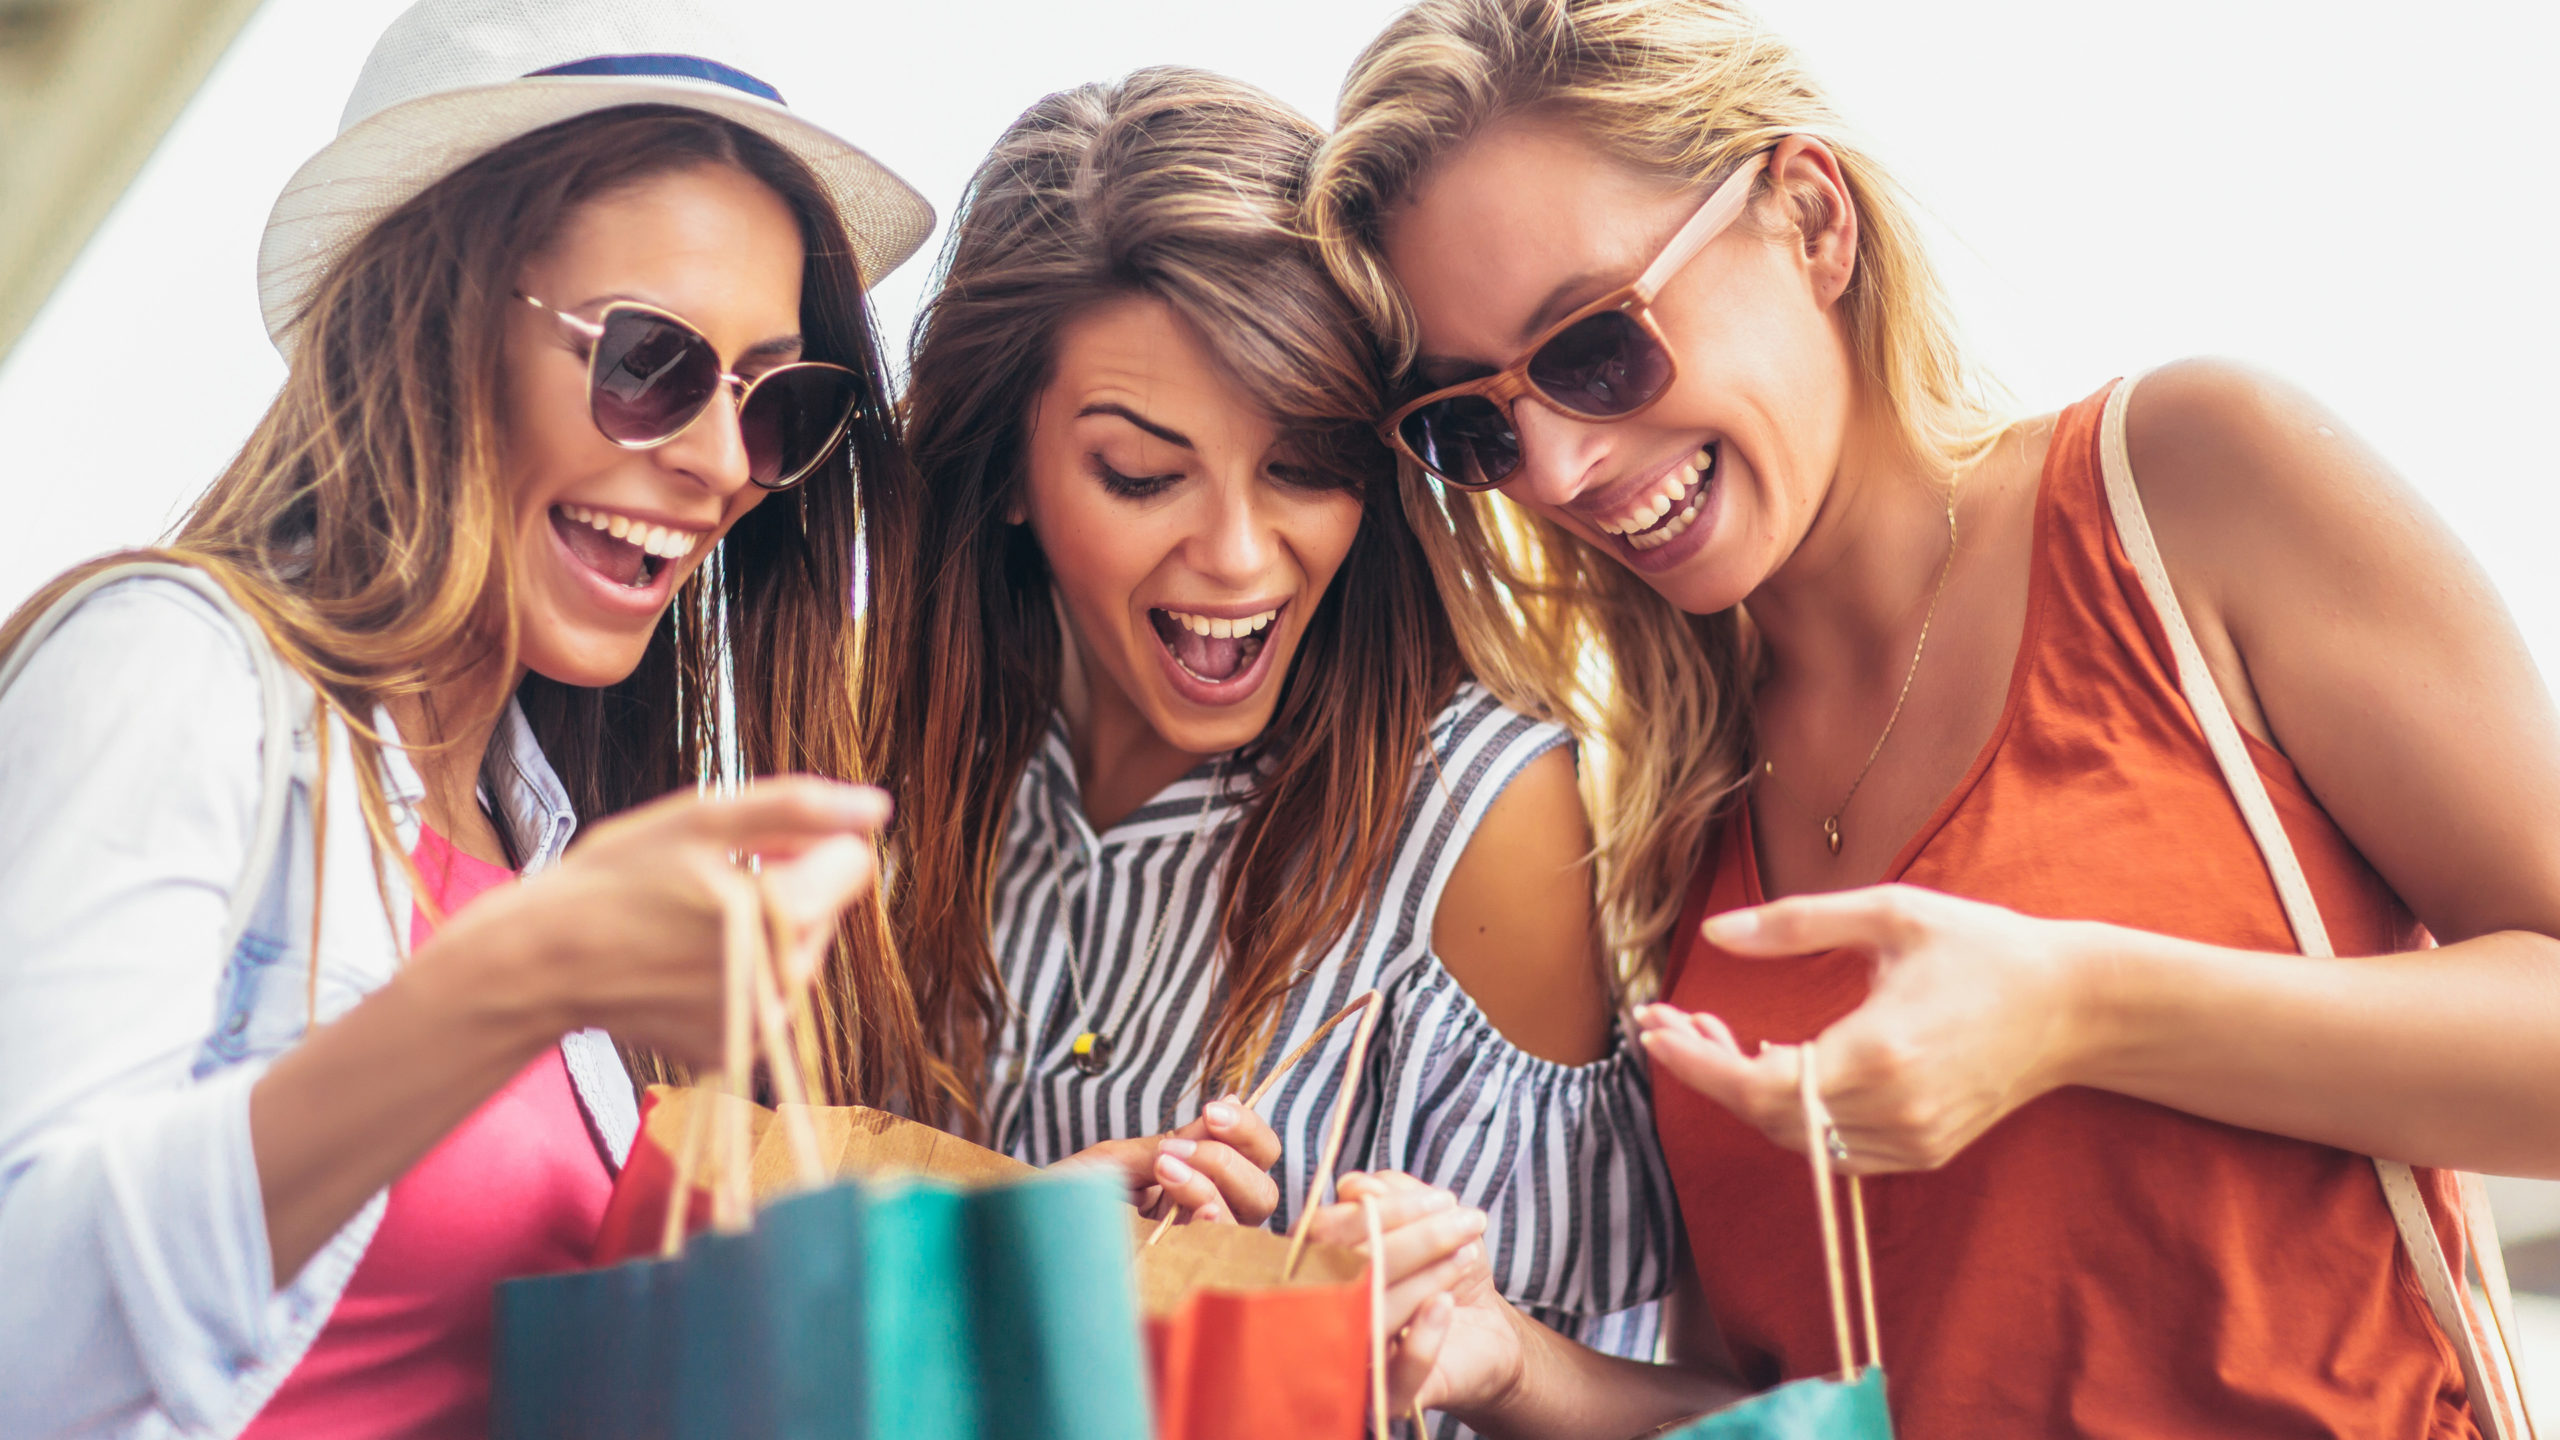 Three women in summer clothing laughing and showing what bought shopping